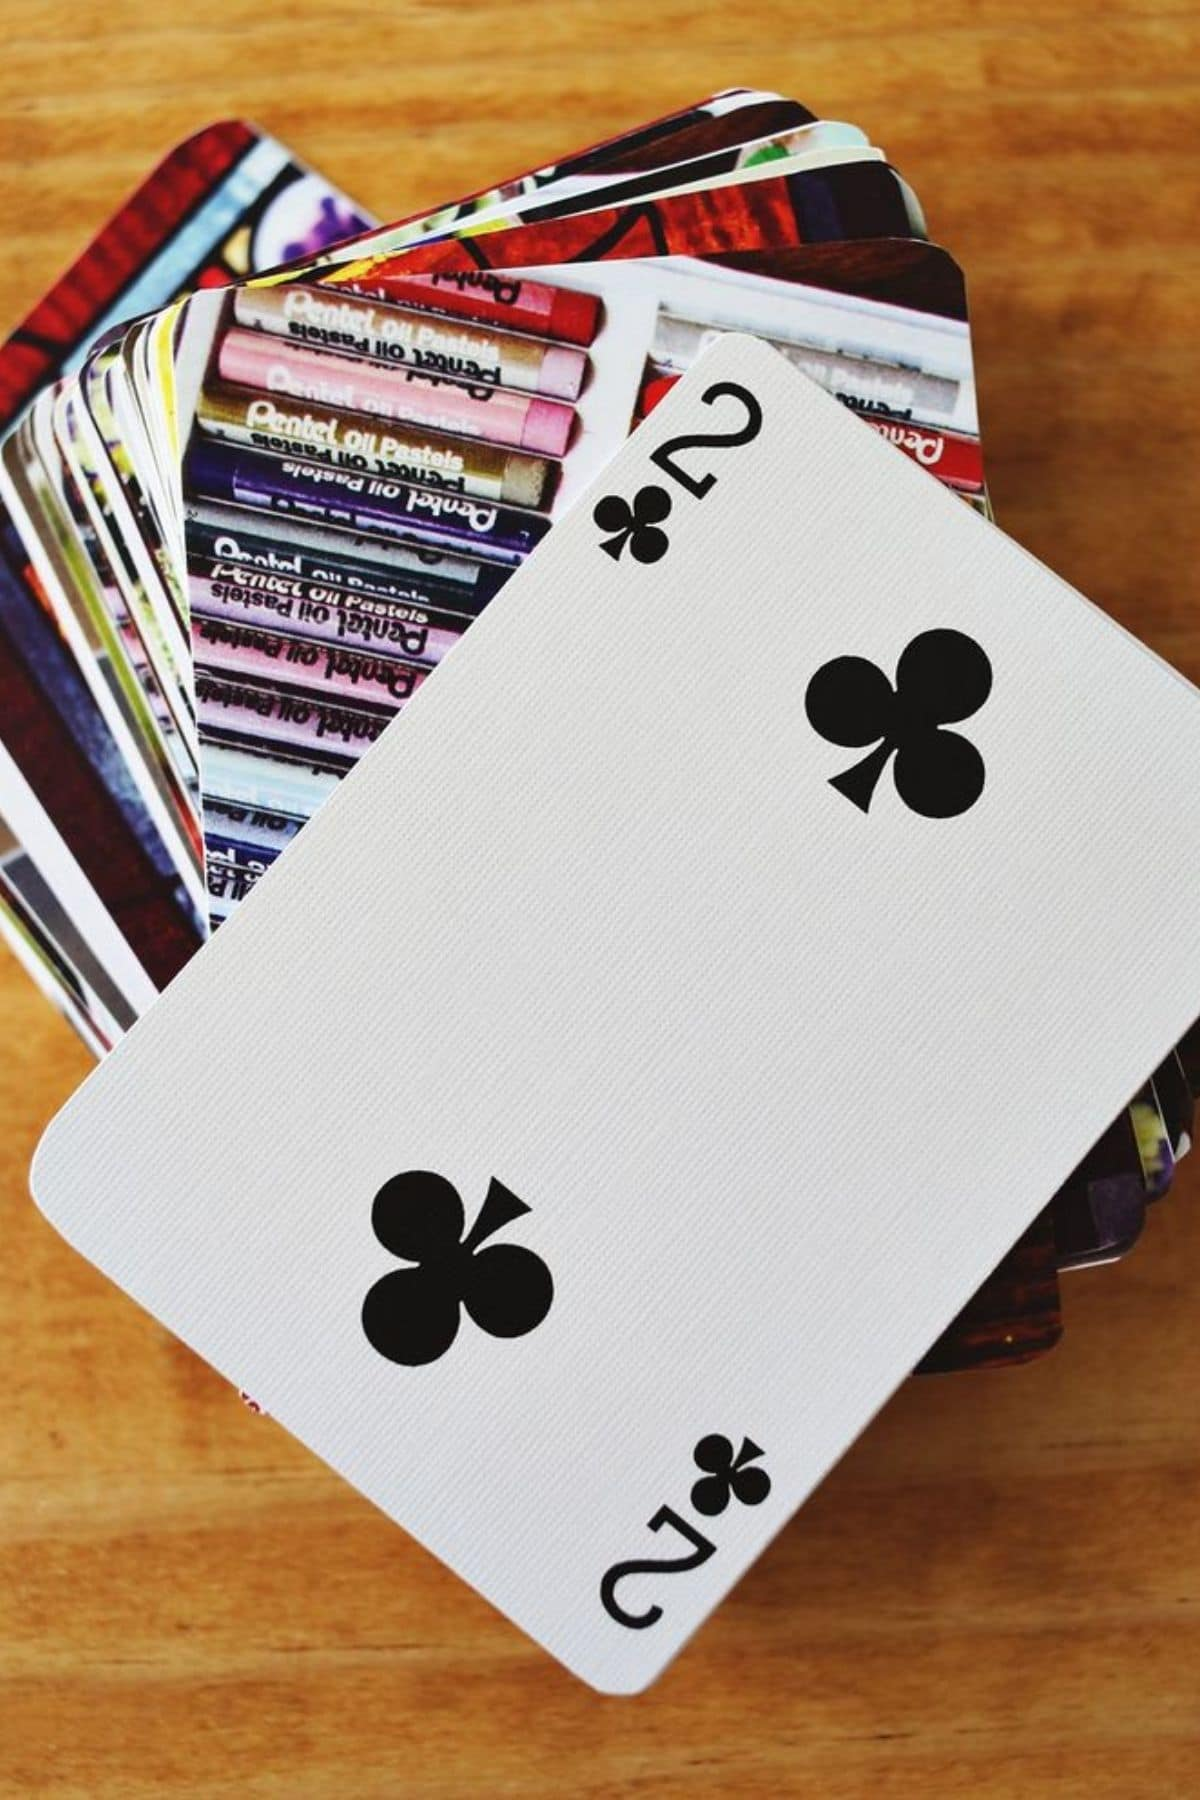 Playing card stack